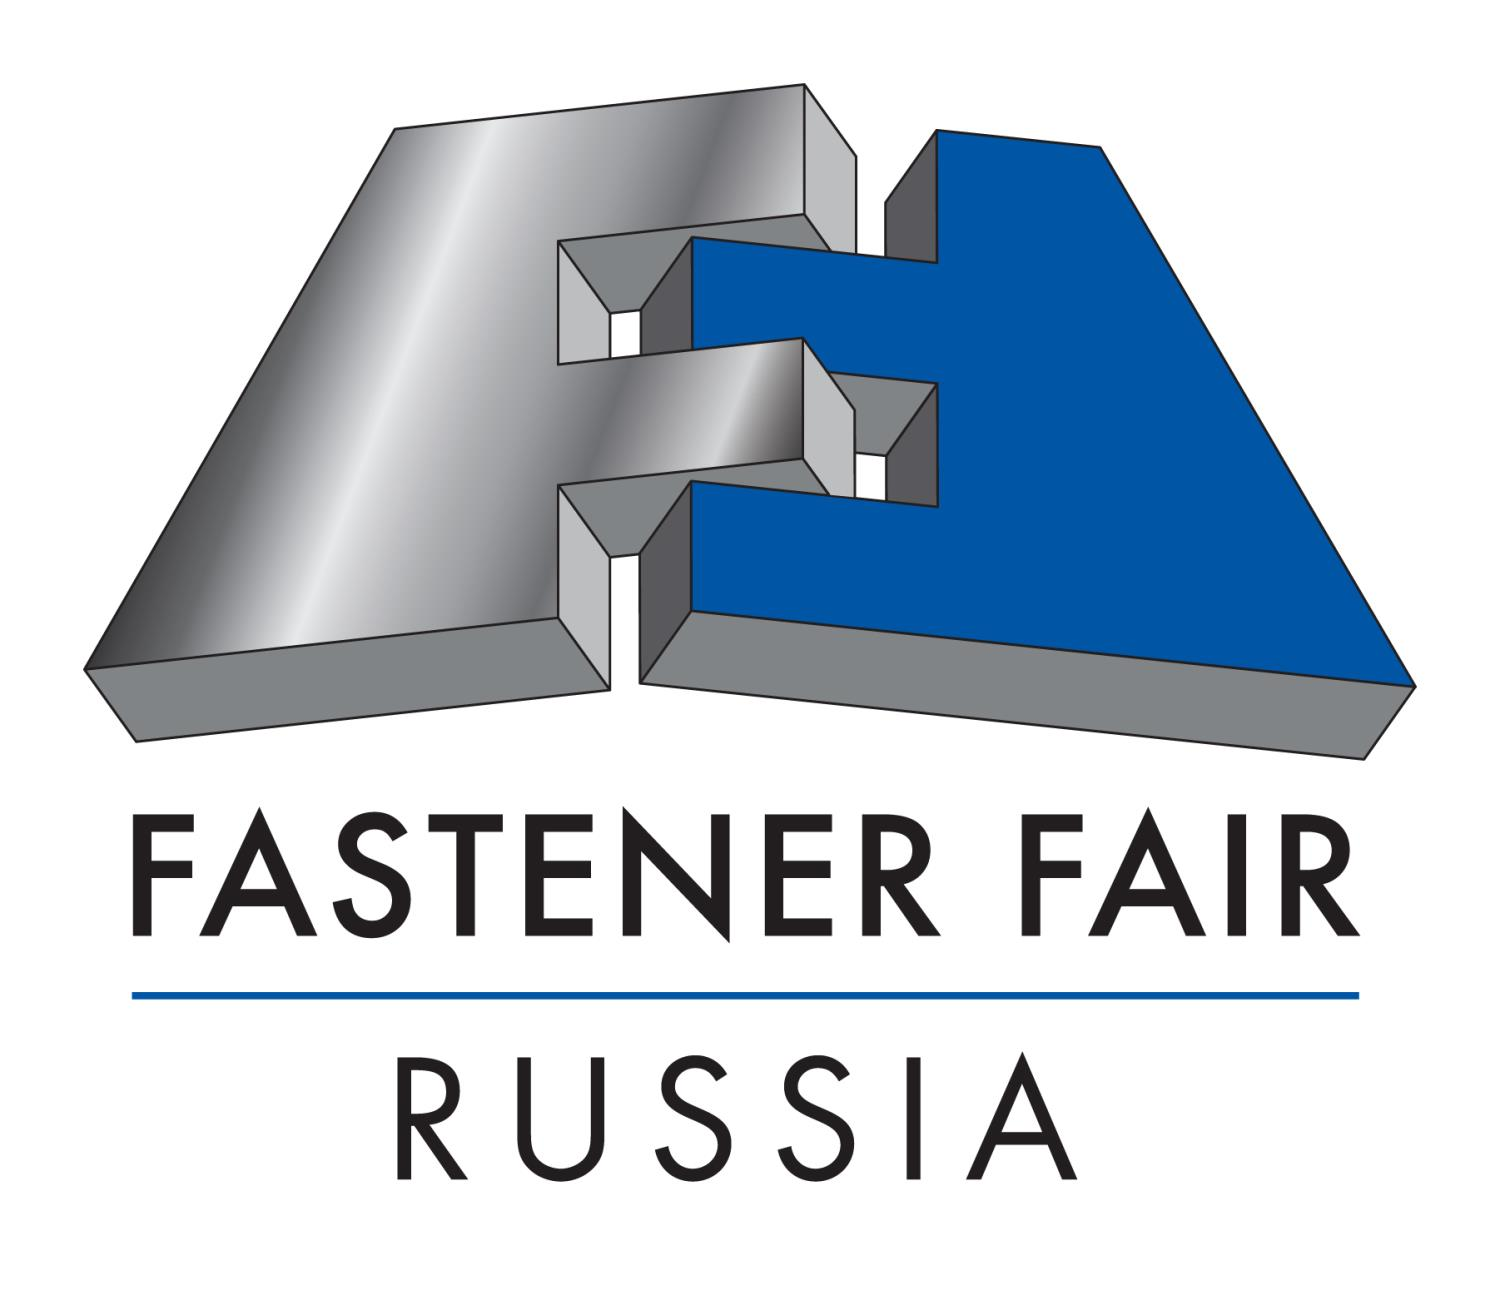 We will be present at  FASTENER FAIR  Russia that will take place in St. Petersburg from 25th to 27th of March 2015, the exhibition focused on fastener and fixing technologies.